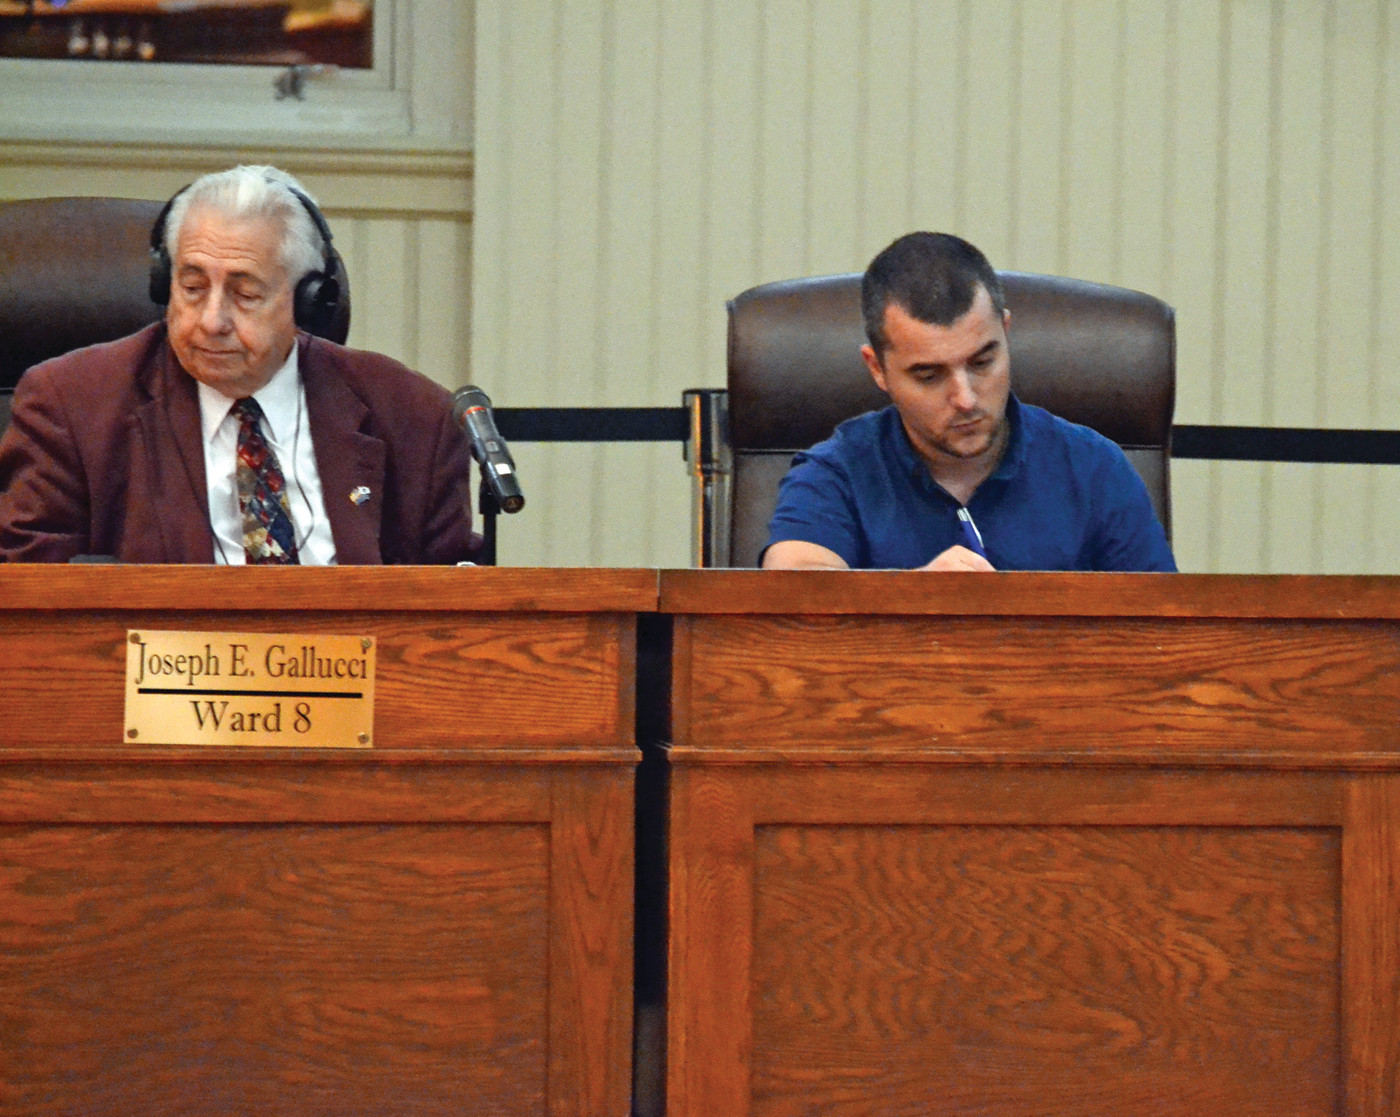 TAKING NOTES: Anthony Sinapi, newly-elected Ward 8 Councilman, sits in Steve Merolla's chair for Ward 9, next to Joseph Gallucci, whom he will replace this upcoming January.